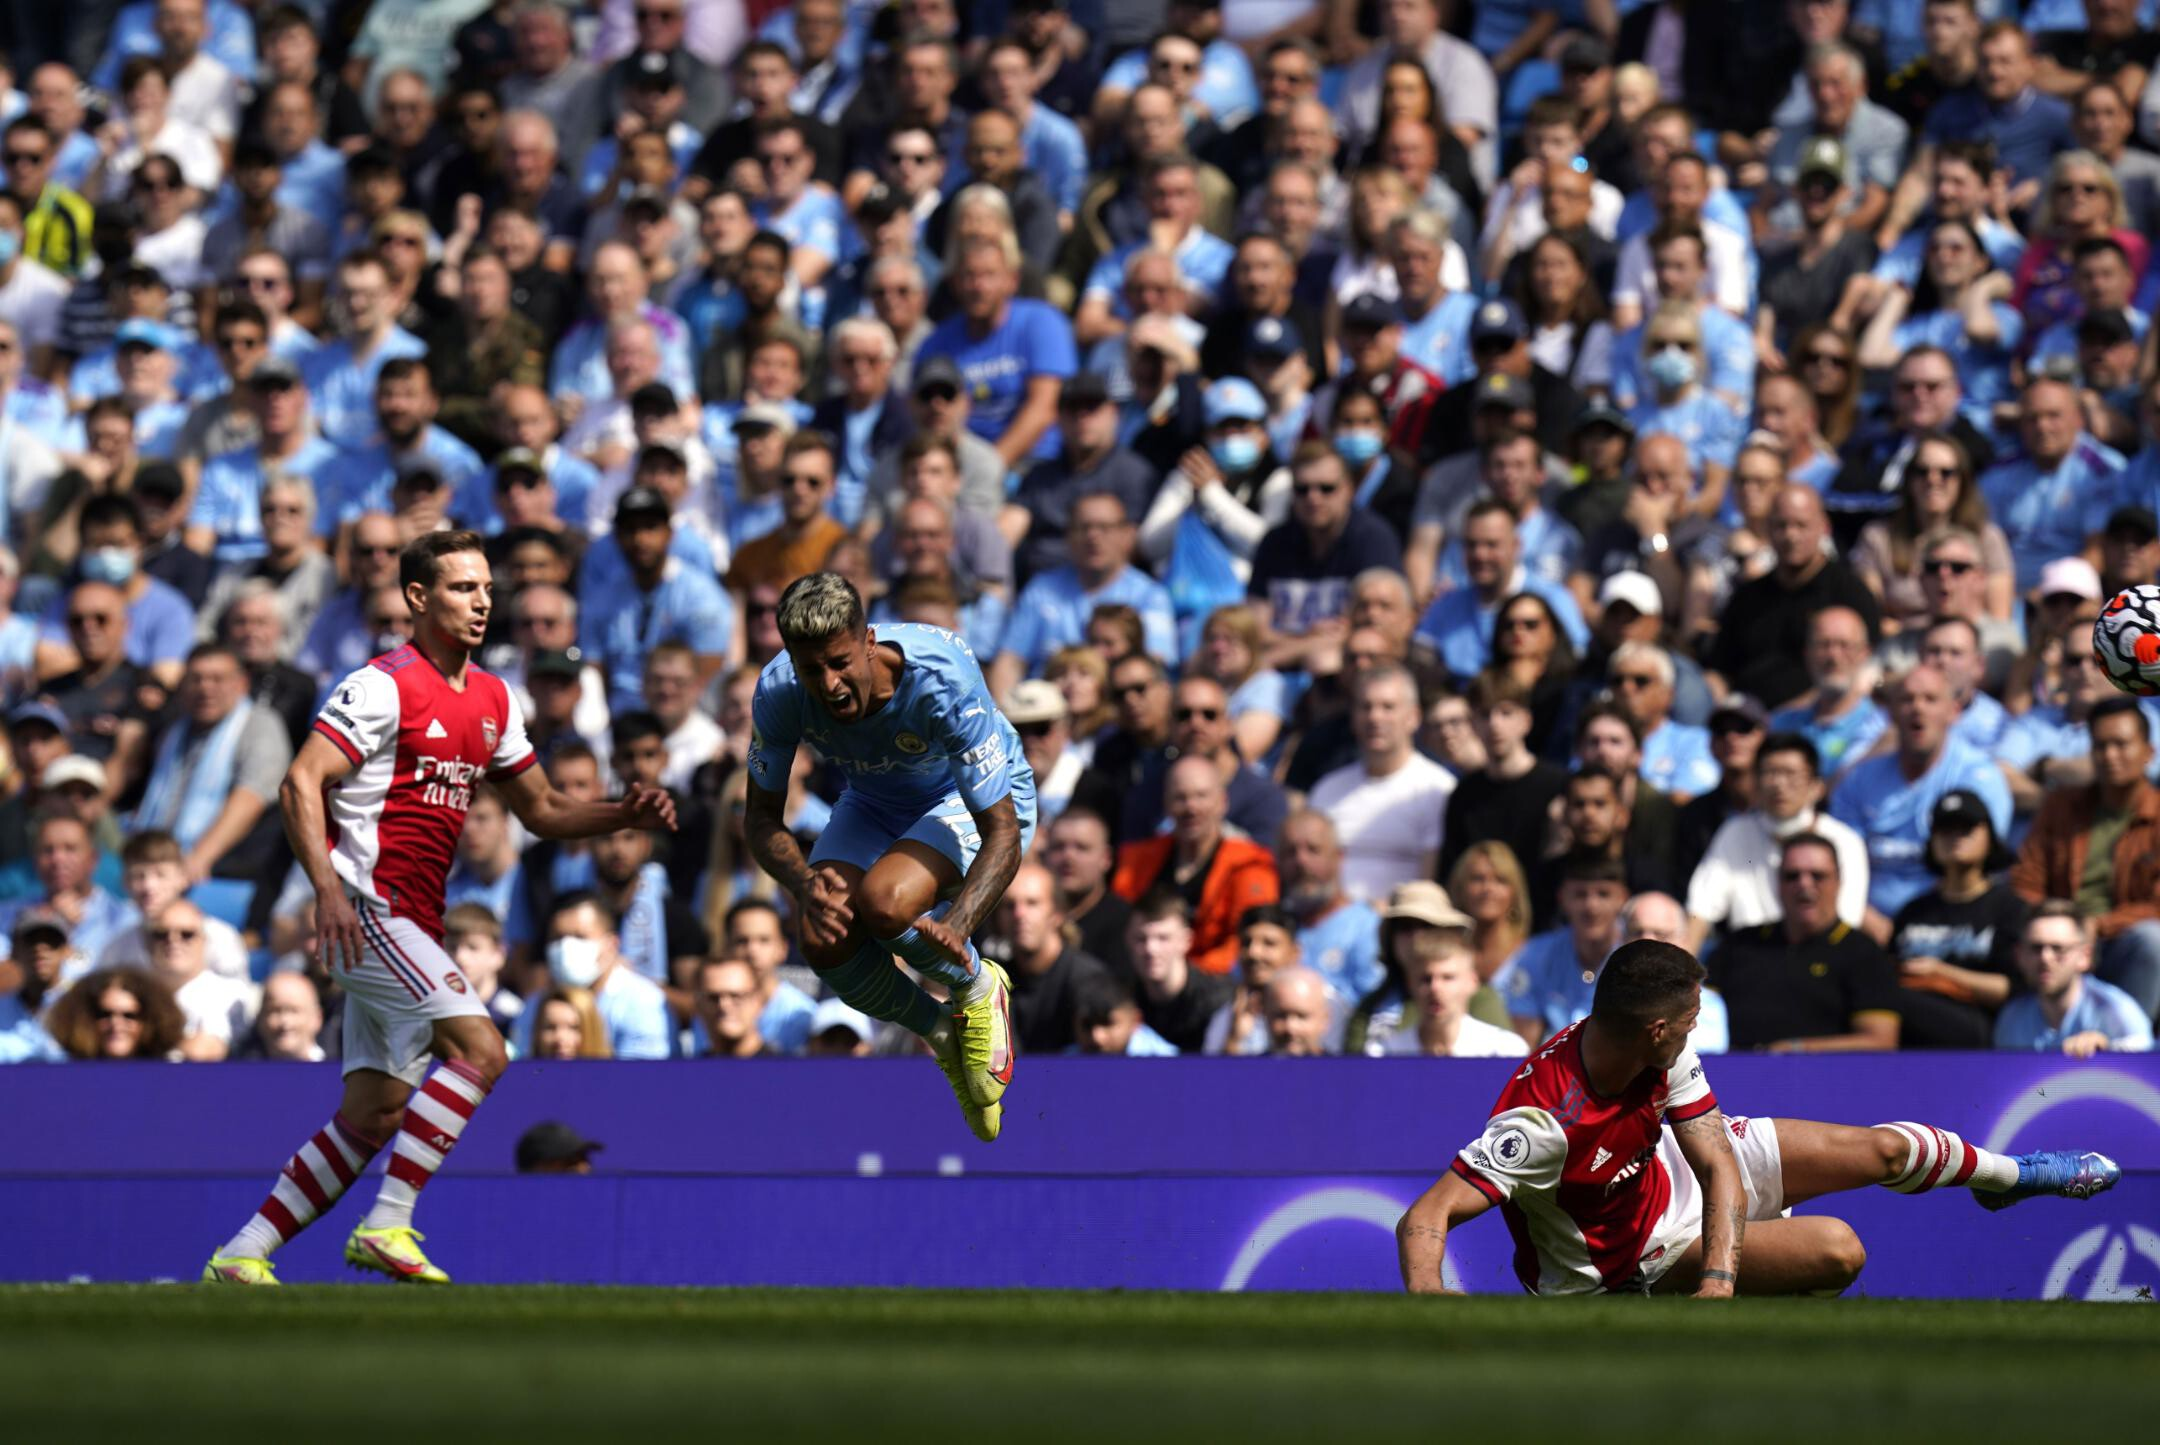 Manchester City smashes Arsenal 5-0 as Gunners drop to bottom of Premier League